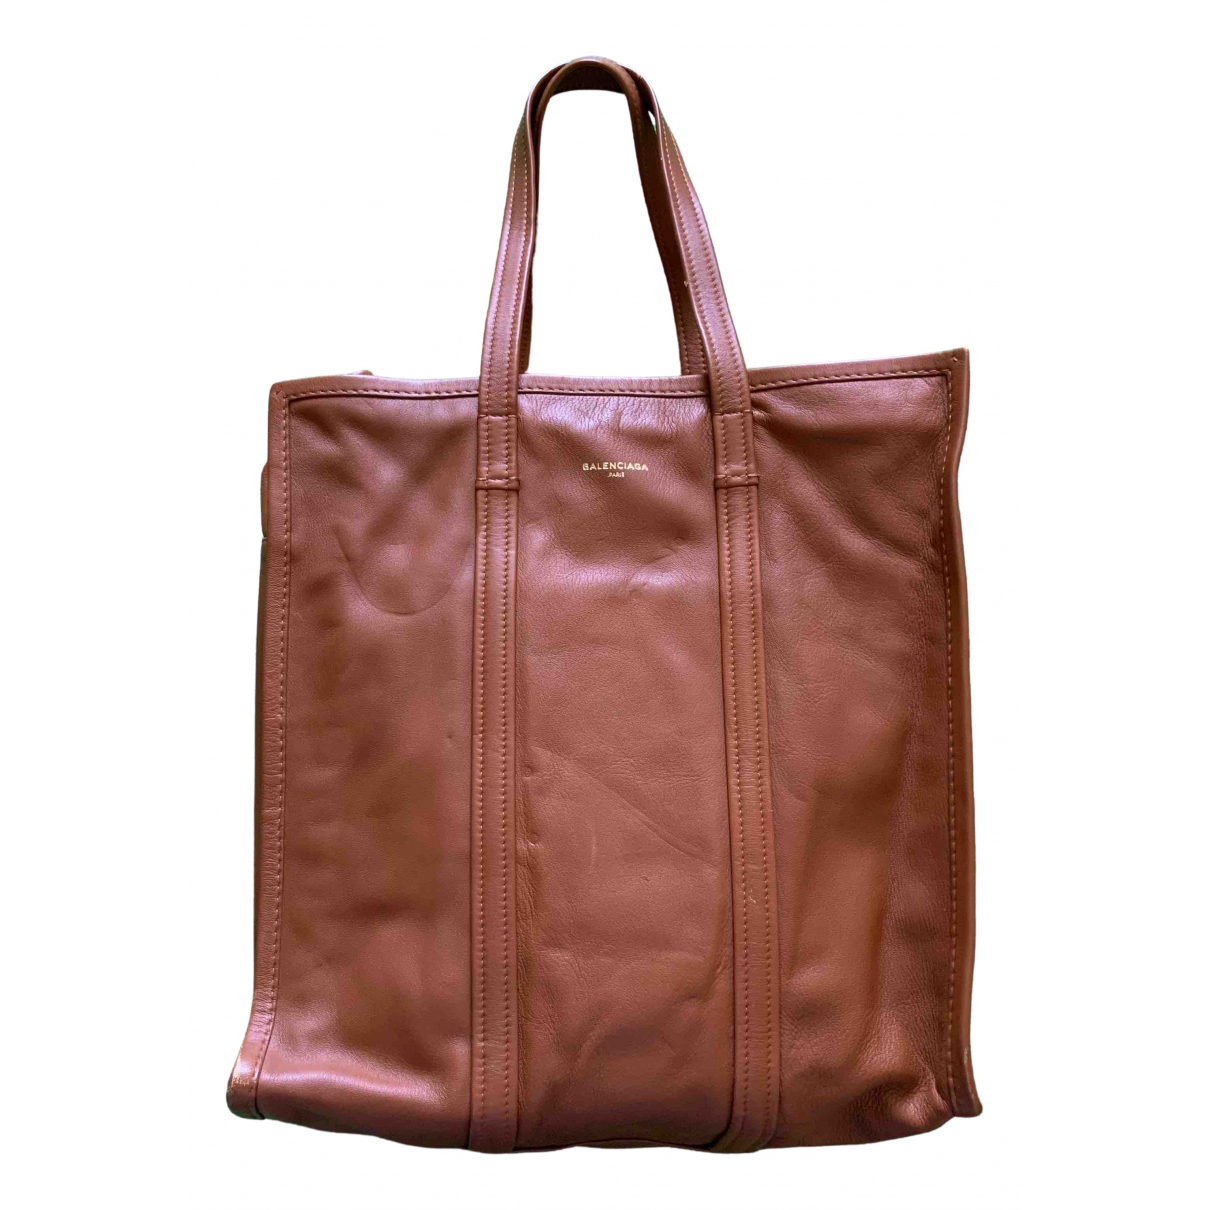 Balenciaga \N Camel Leather bag for Men \N